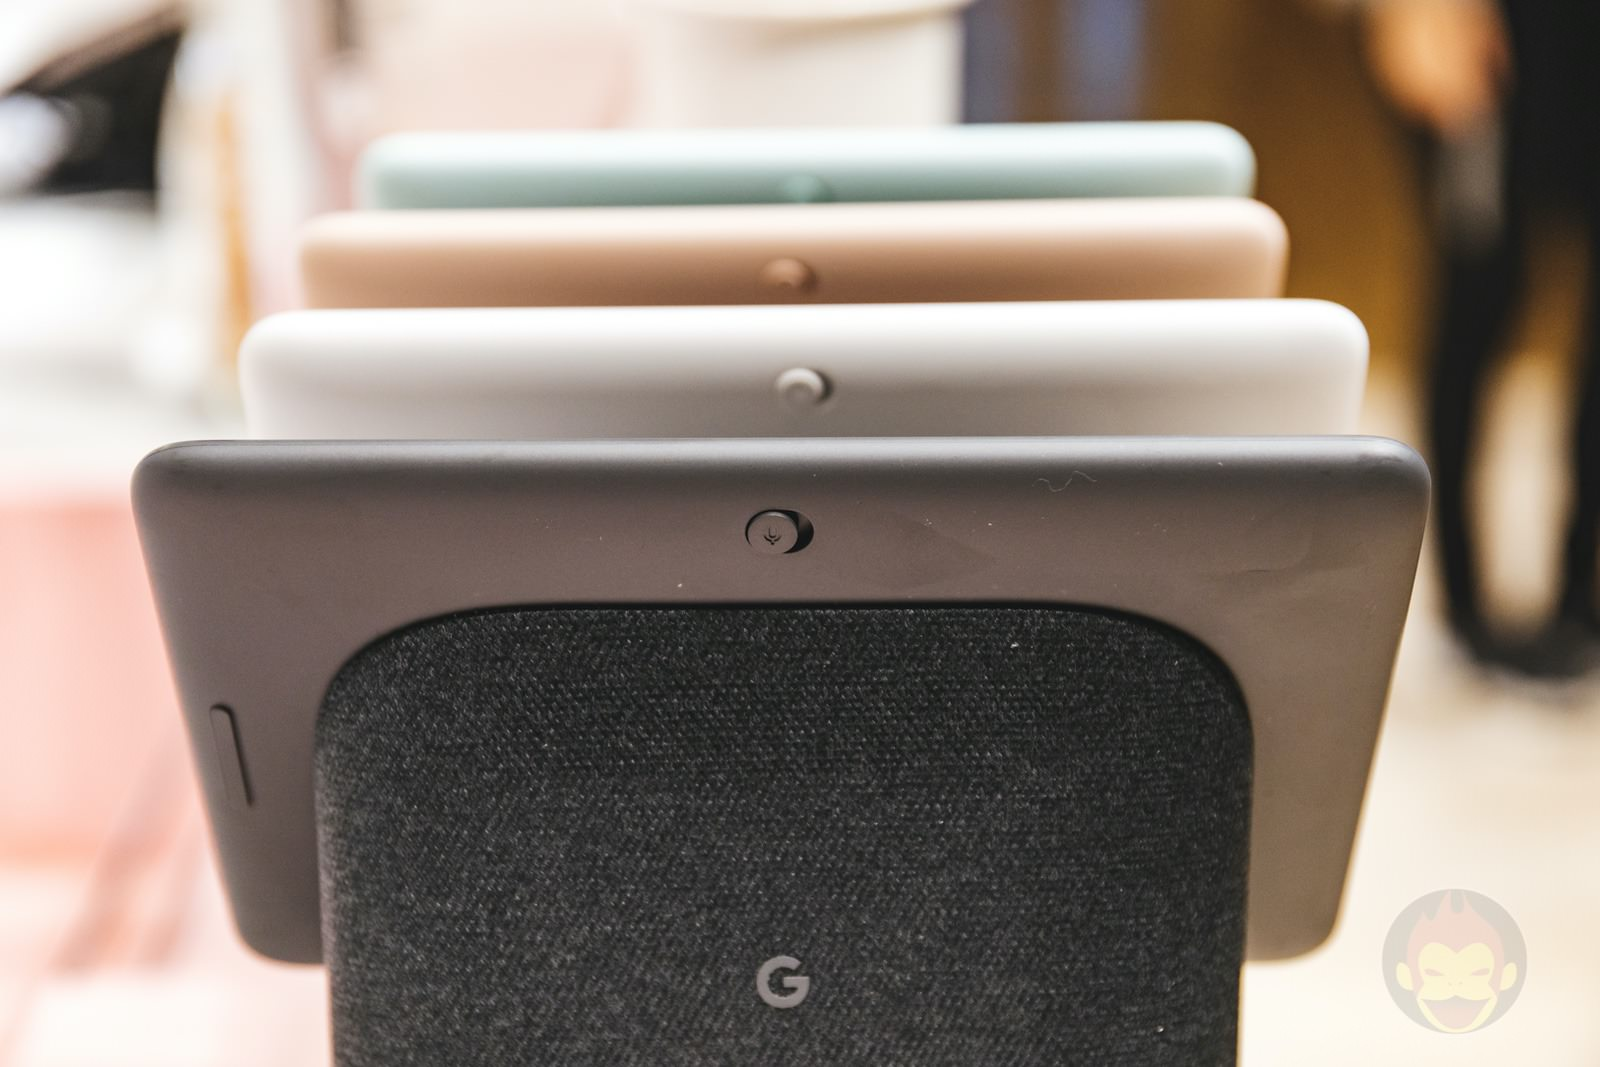 Google-Nest-Hub-Hands-On-05.jpg